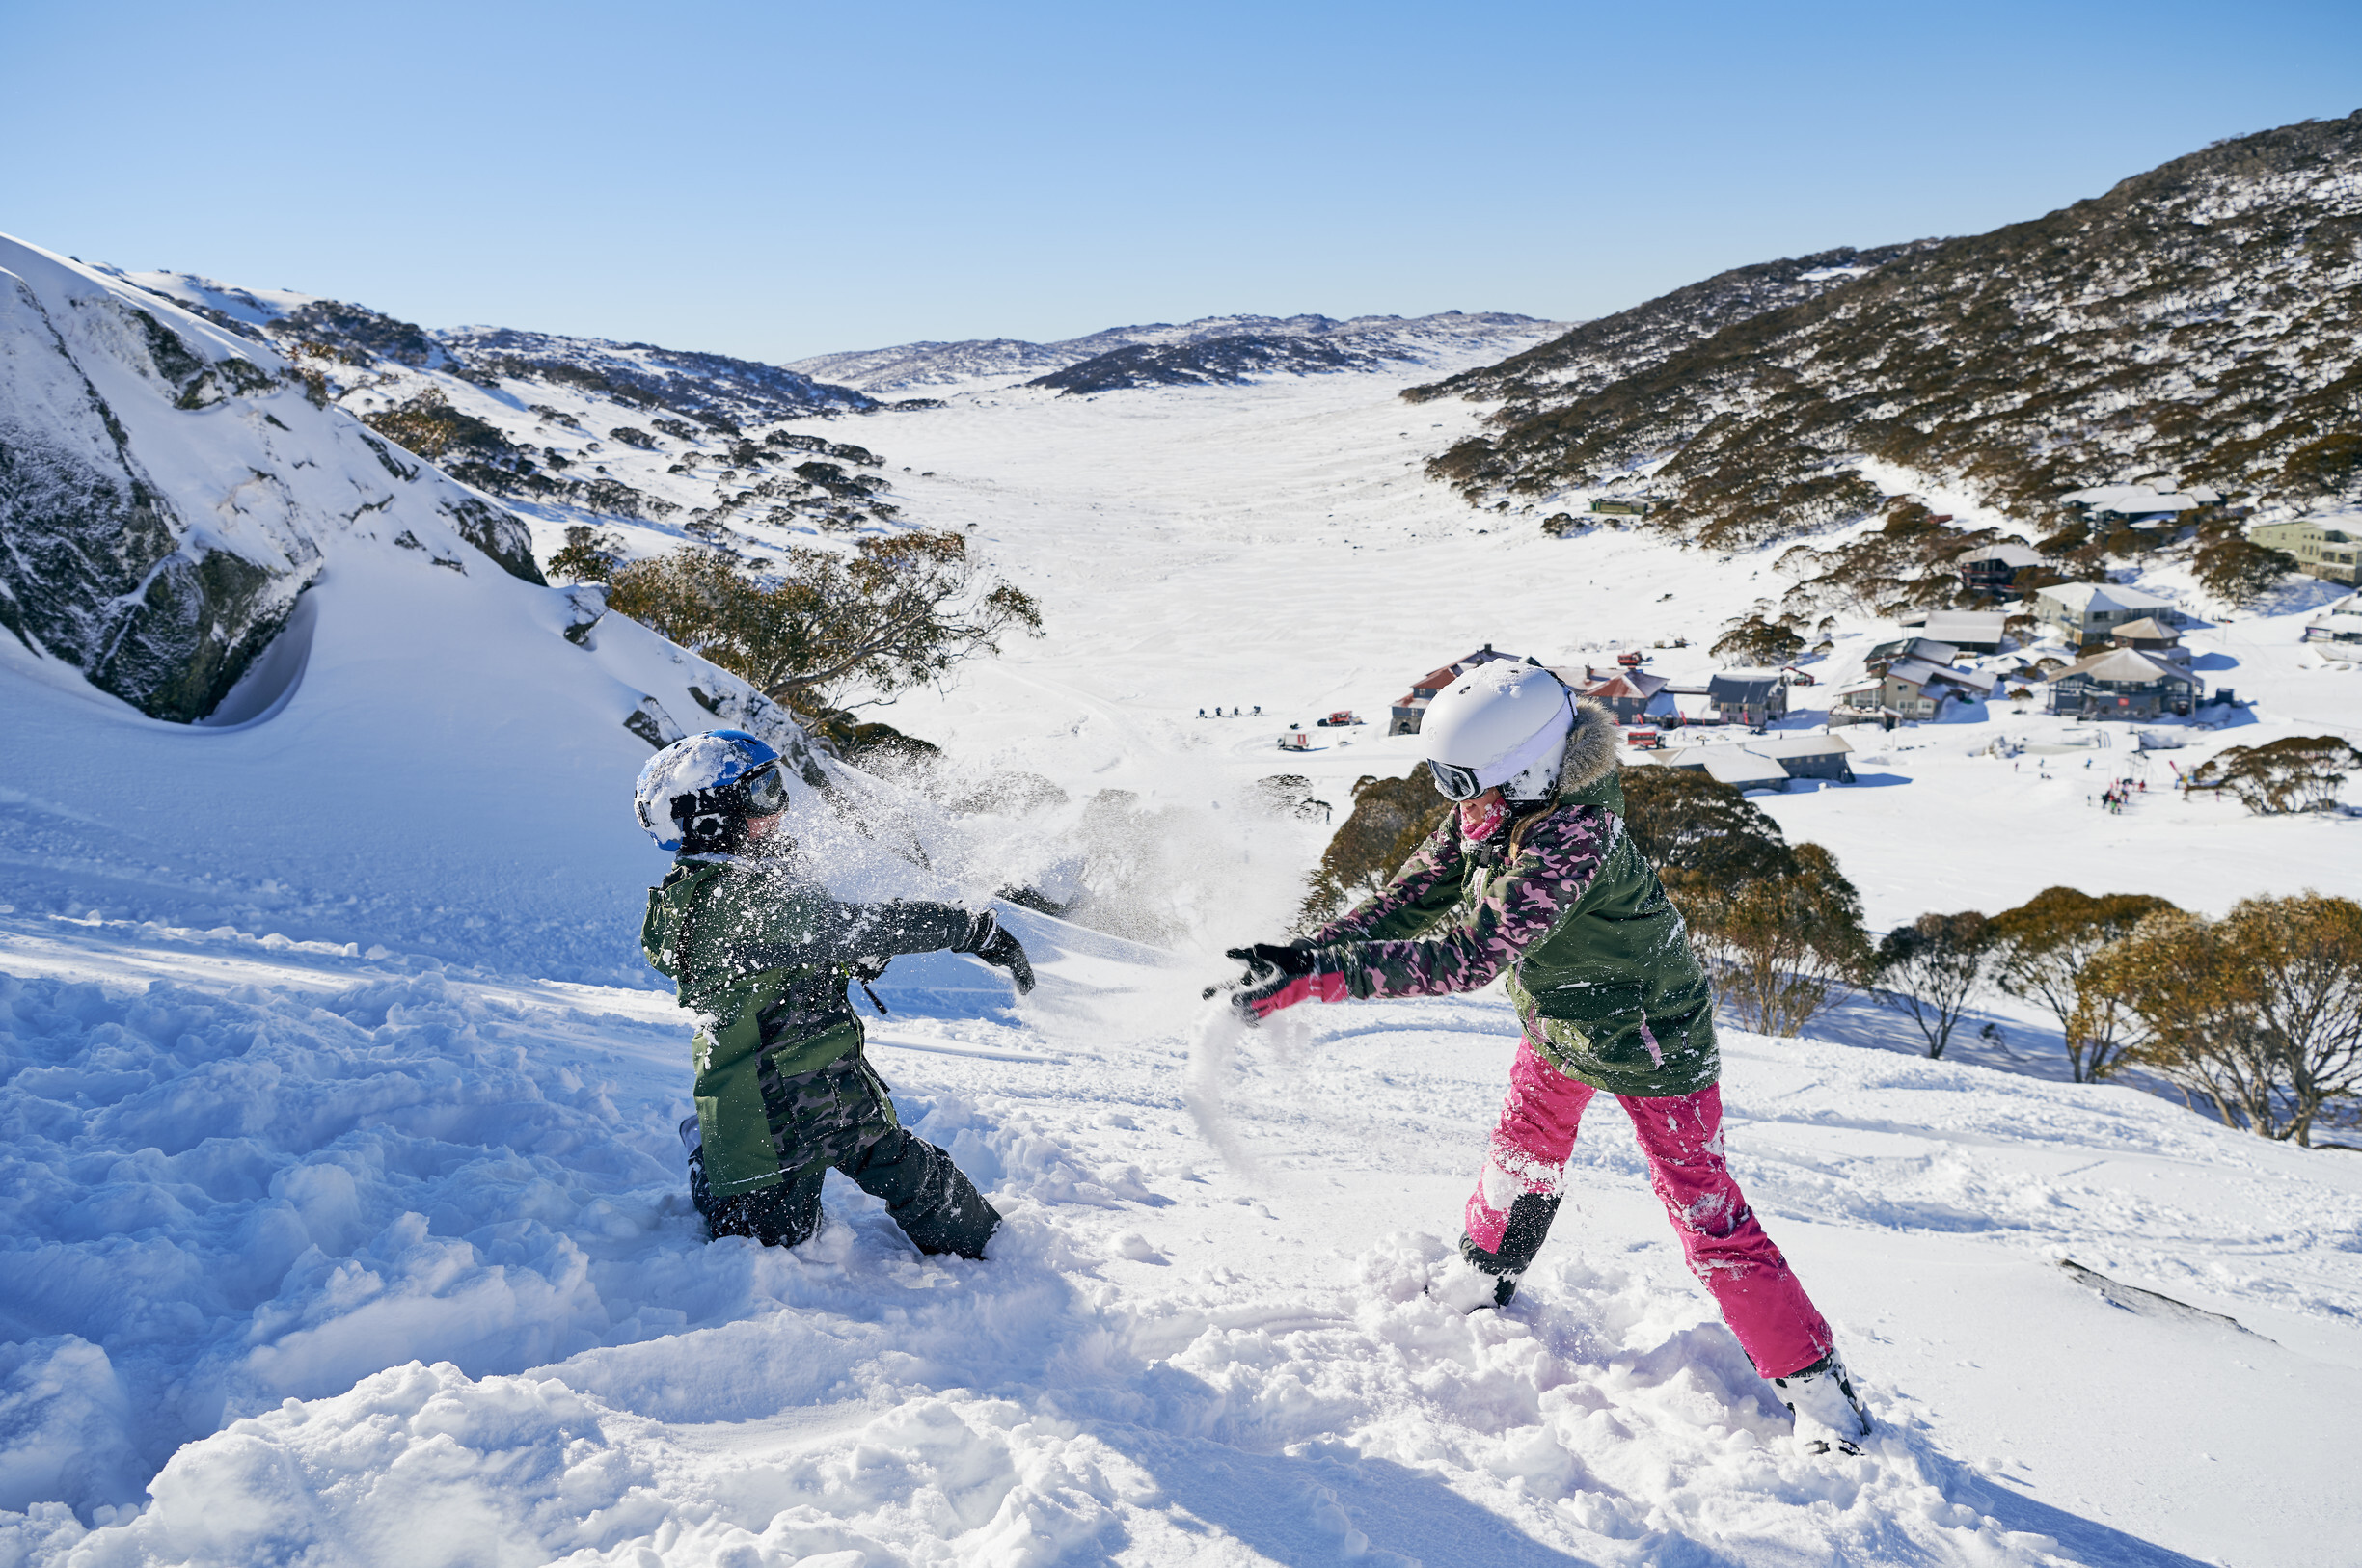 Children enjoying a fun day in the snow at Charlottes Pass in the Snowy Mountains.